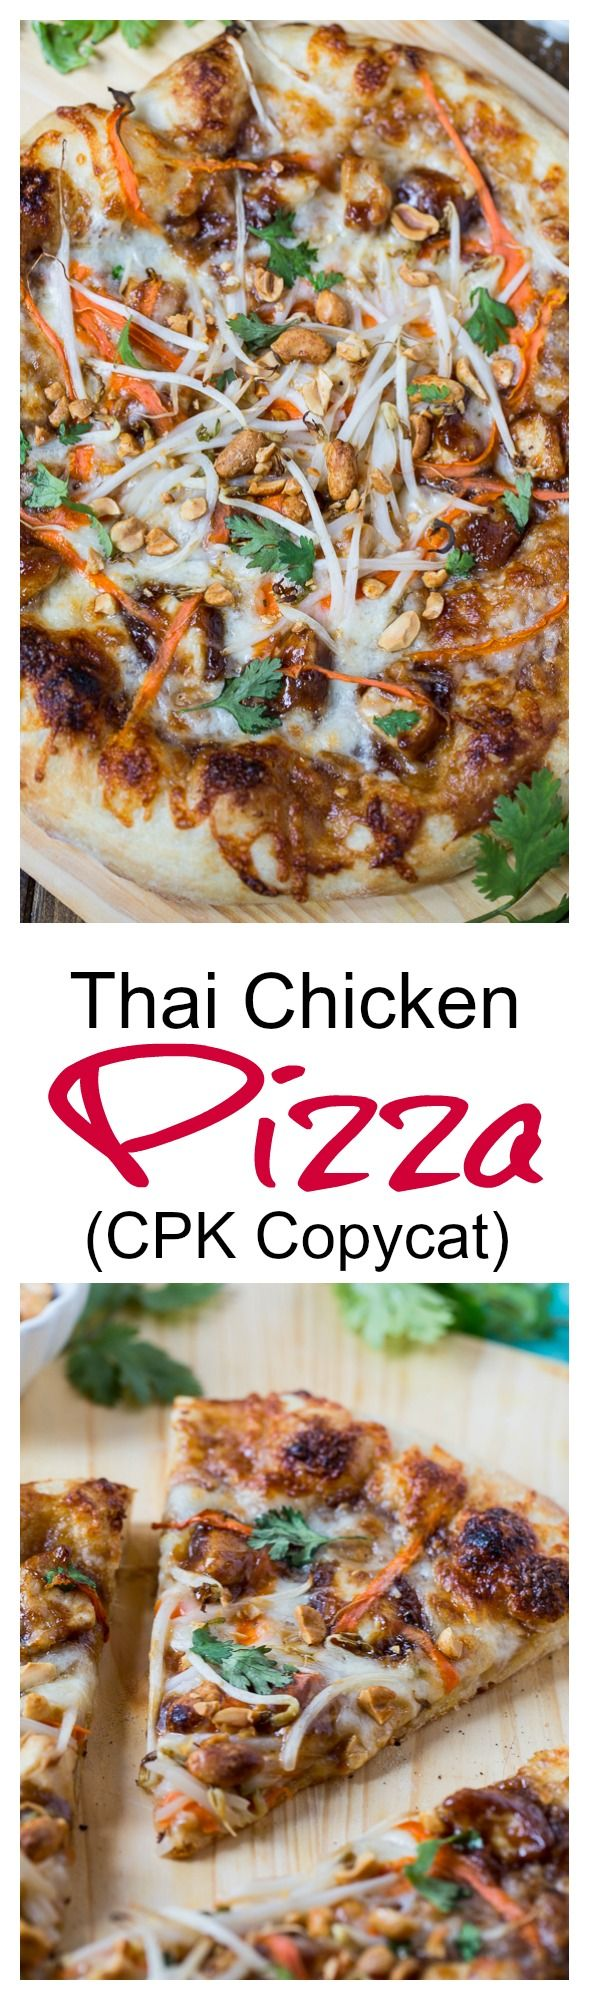 Thai Chicken Pizza (California Pizza Kitchen copycat) #Majestic #Pizza #BuffaloBucksCoffee